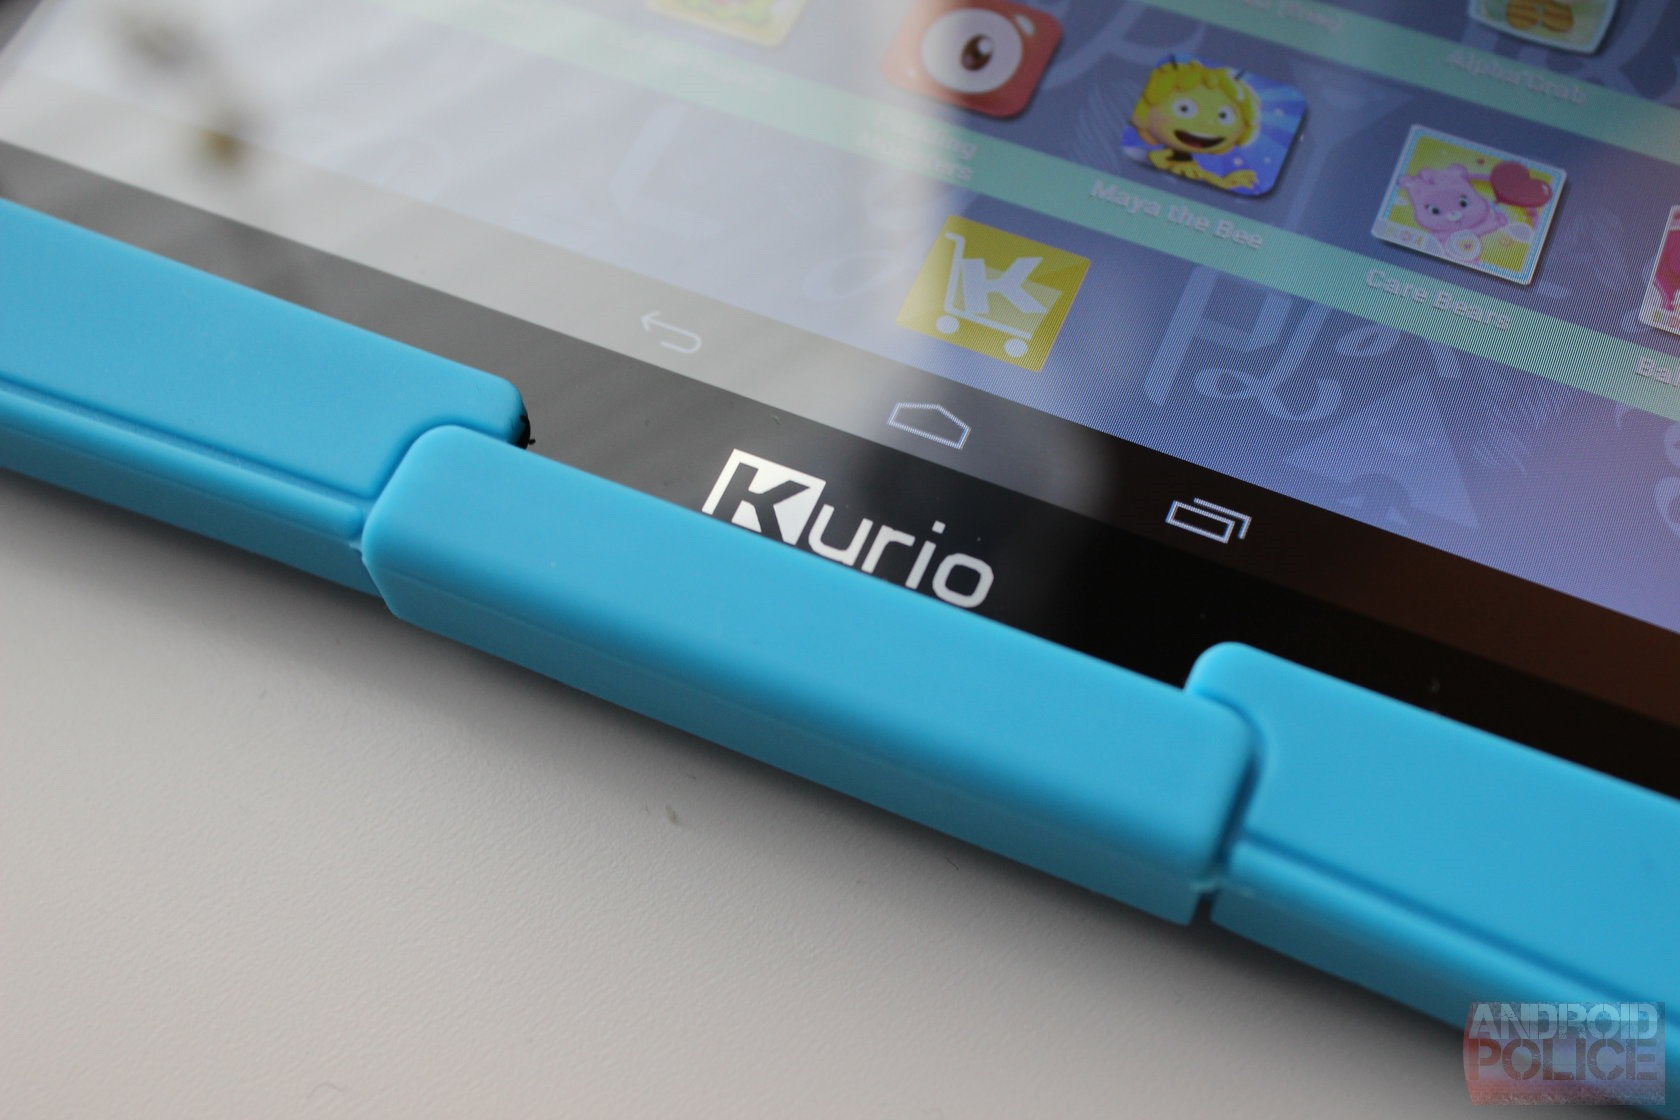 Kurio Xtreme Kids Tablet Lightning Review: A Good Interface